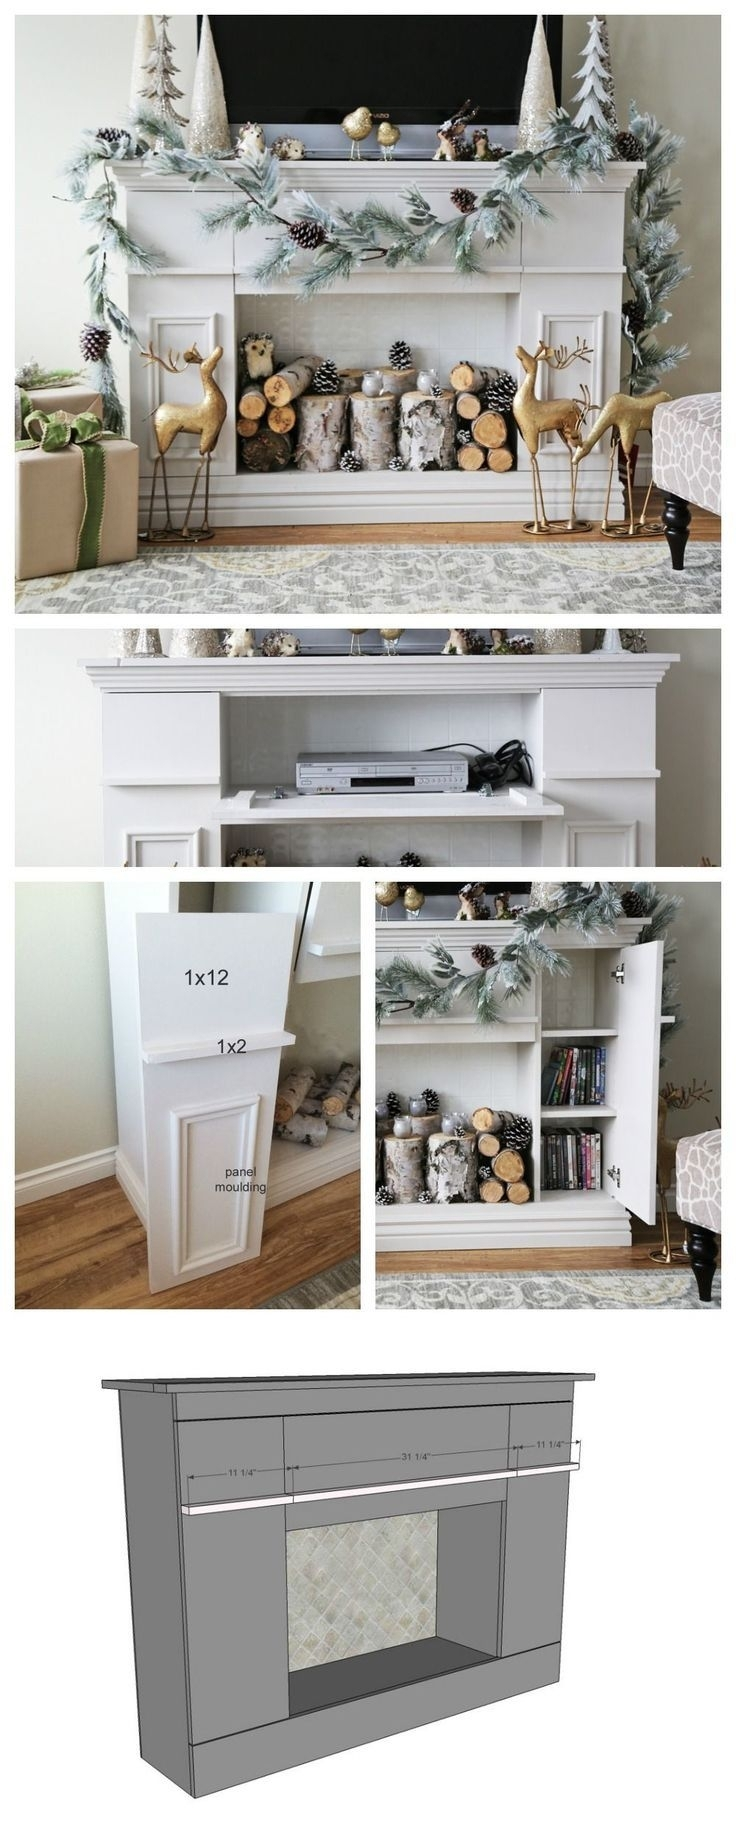 9 Best Fireplace Images On Pinterest | Fire Places, Living Room And Inside Marbled Axton Sideboards (View 21 of 26)